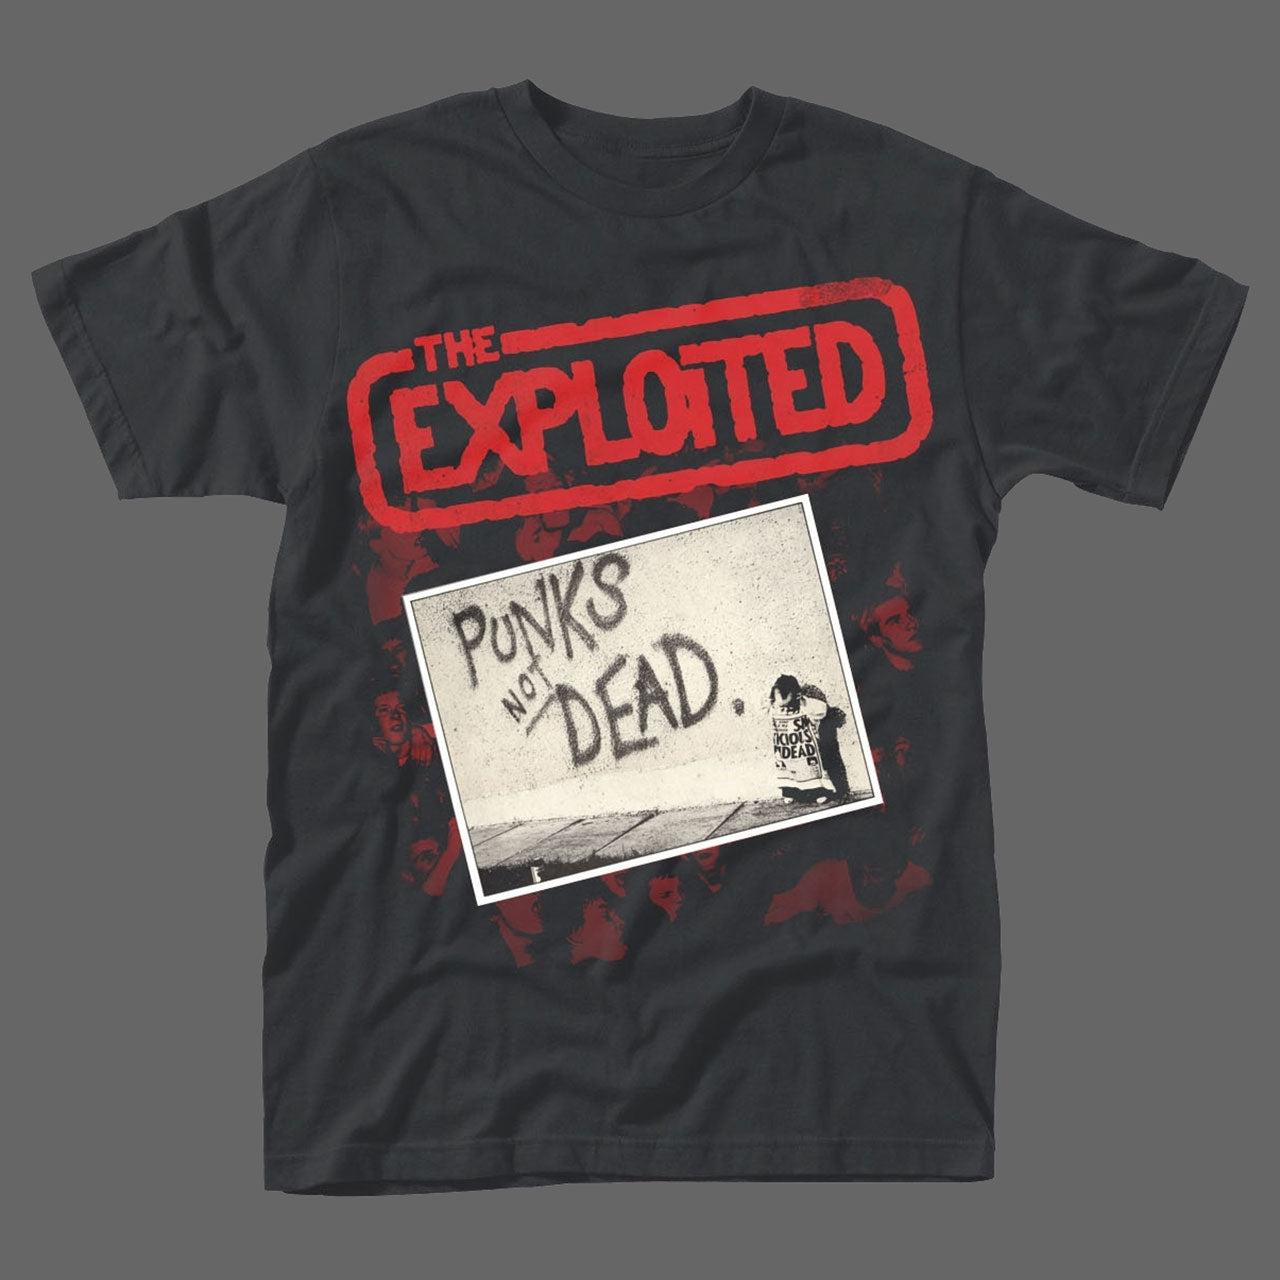 The Exploited - Punk's Not Dead (T-Shirt)